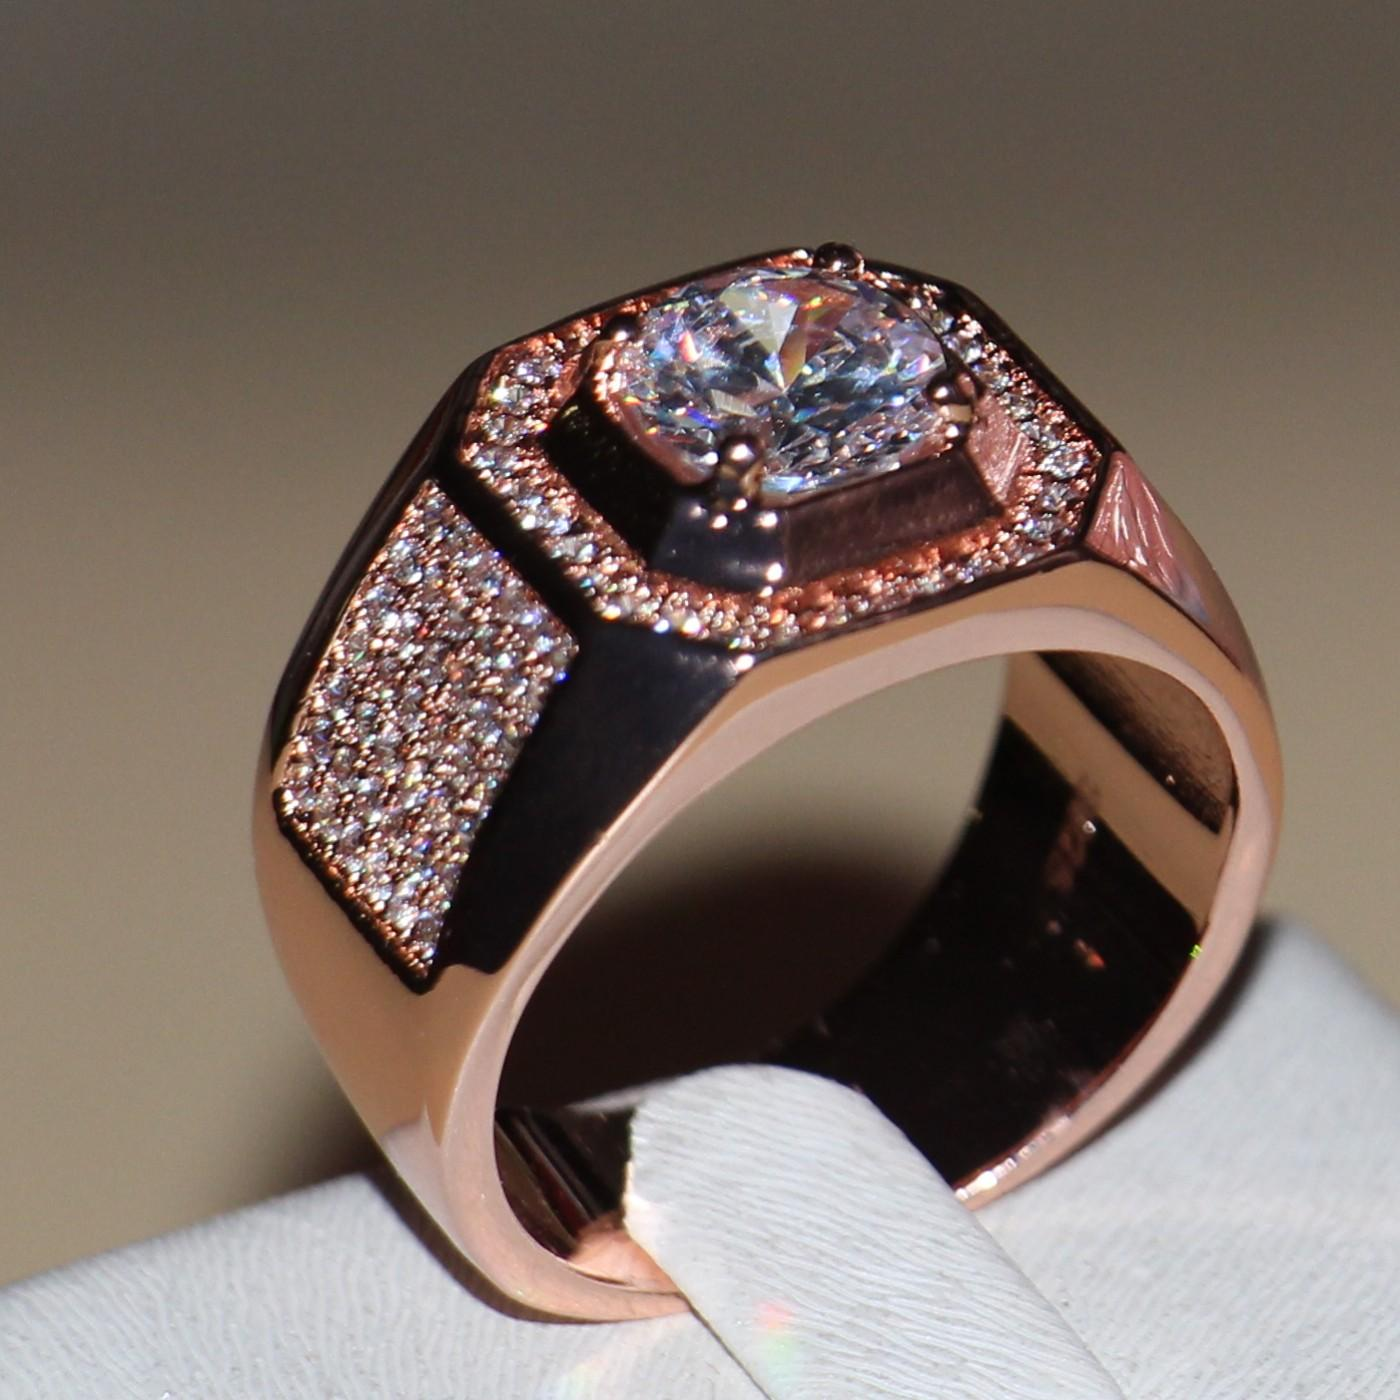 Size 8/9/10/11/12/13 2016 Hot sale Men Jewelry Round cut 8MM topaz 925 sterling silver CZ Diamond Rose gold plated band Ring for love gift